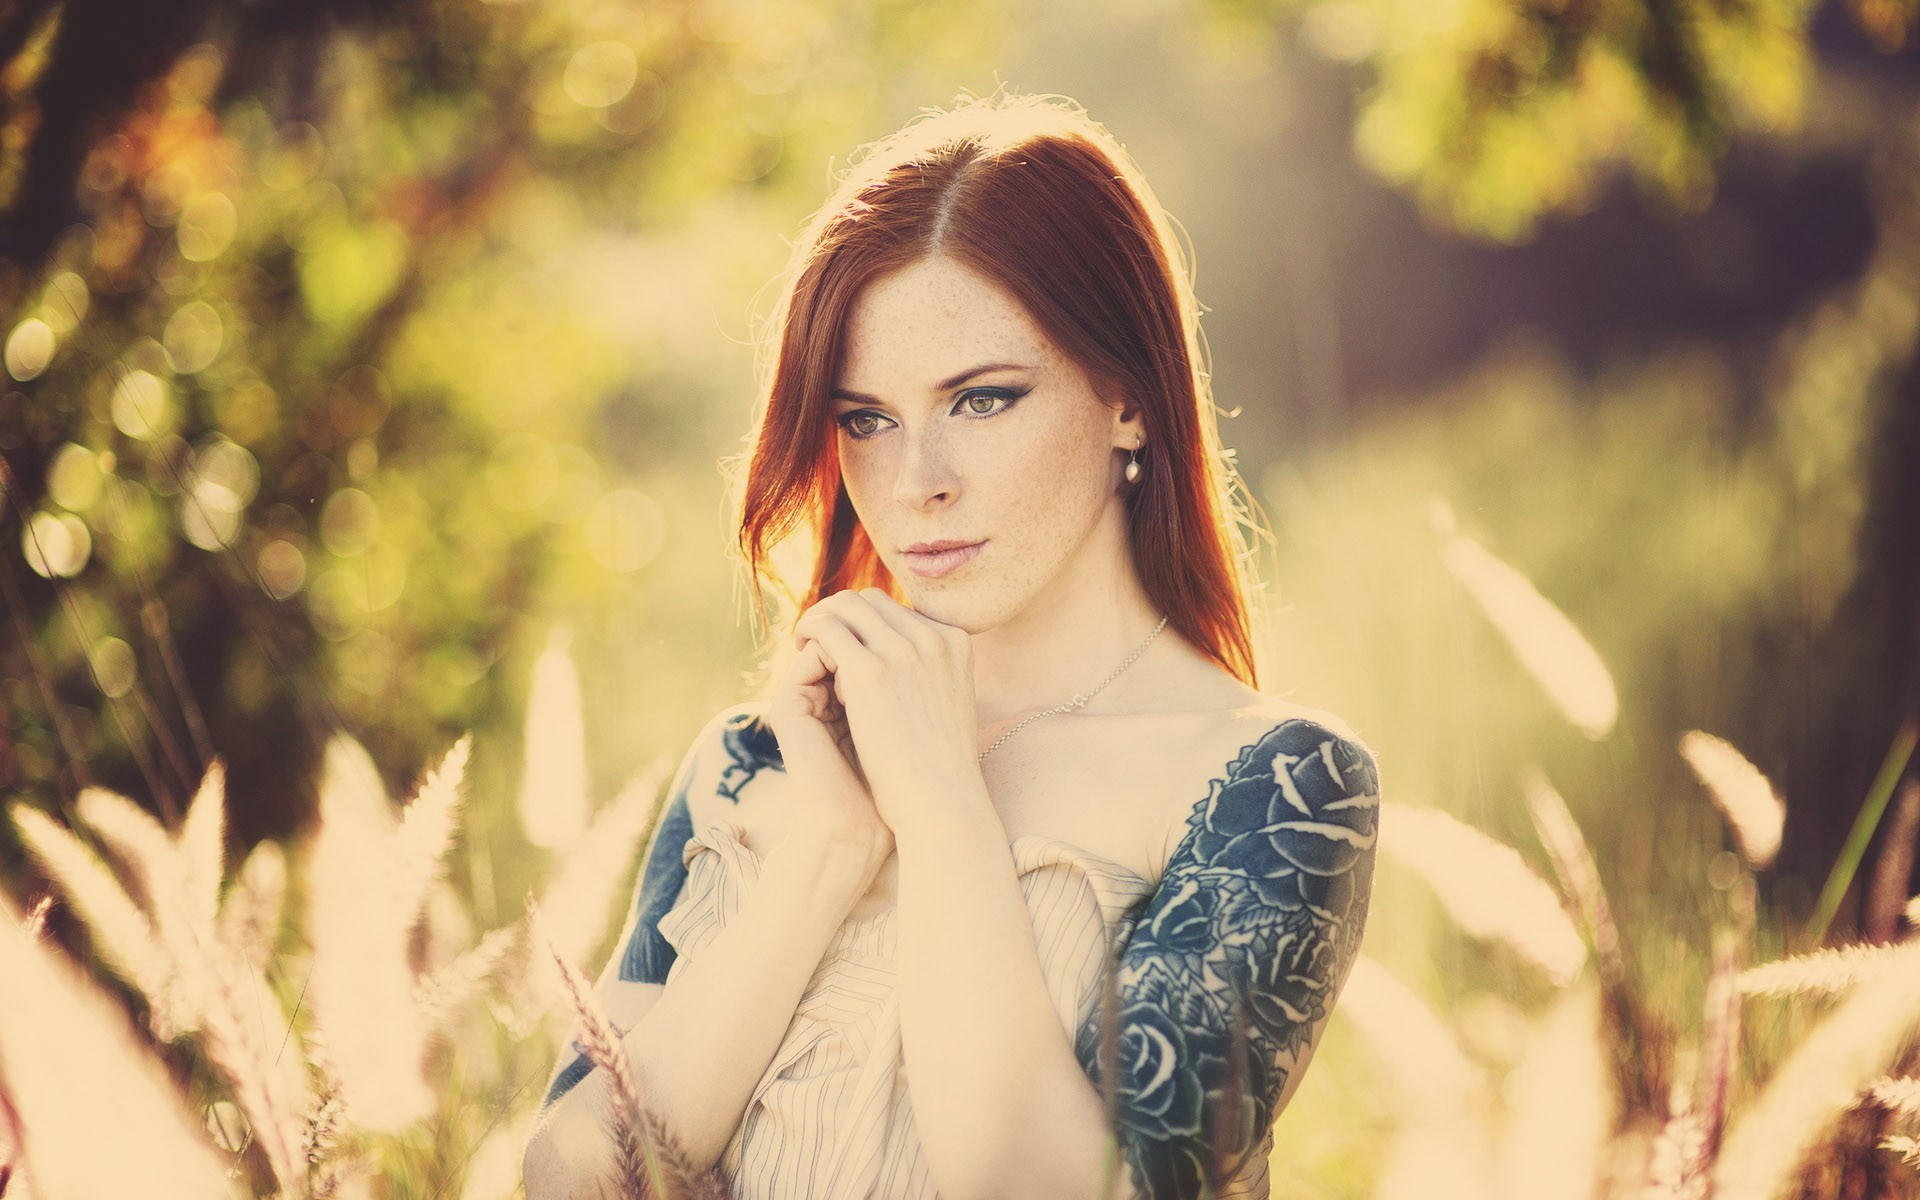 redhead-girl-tattoos-freckles-photo-hd-wallpaper